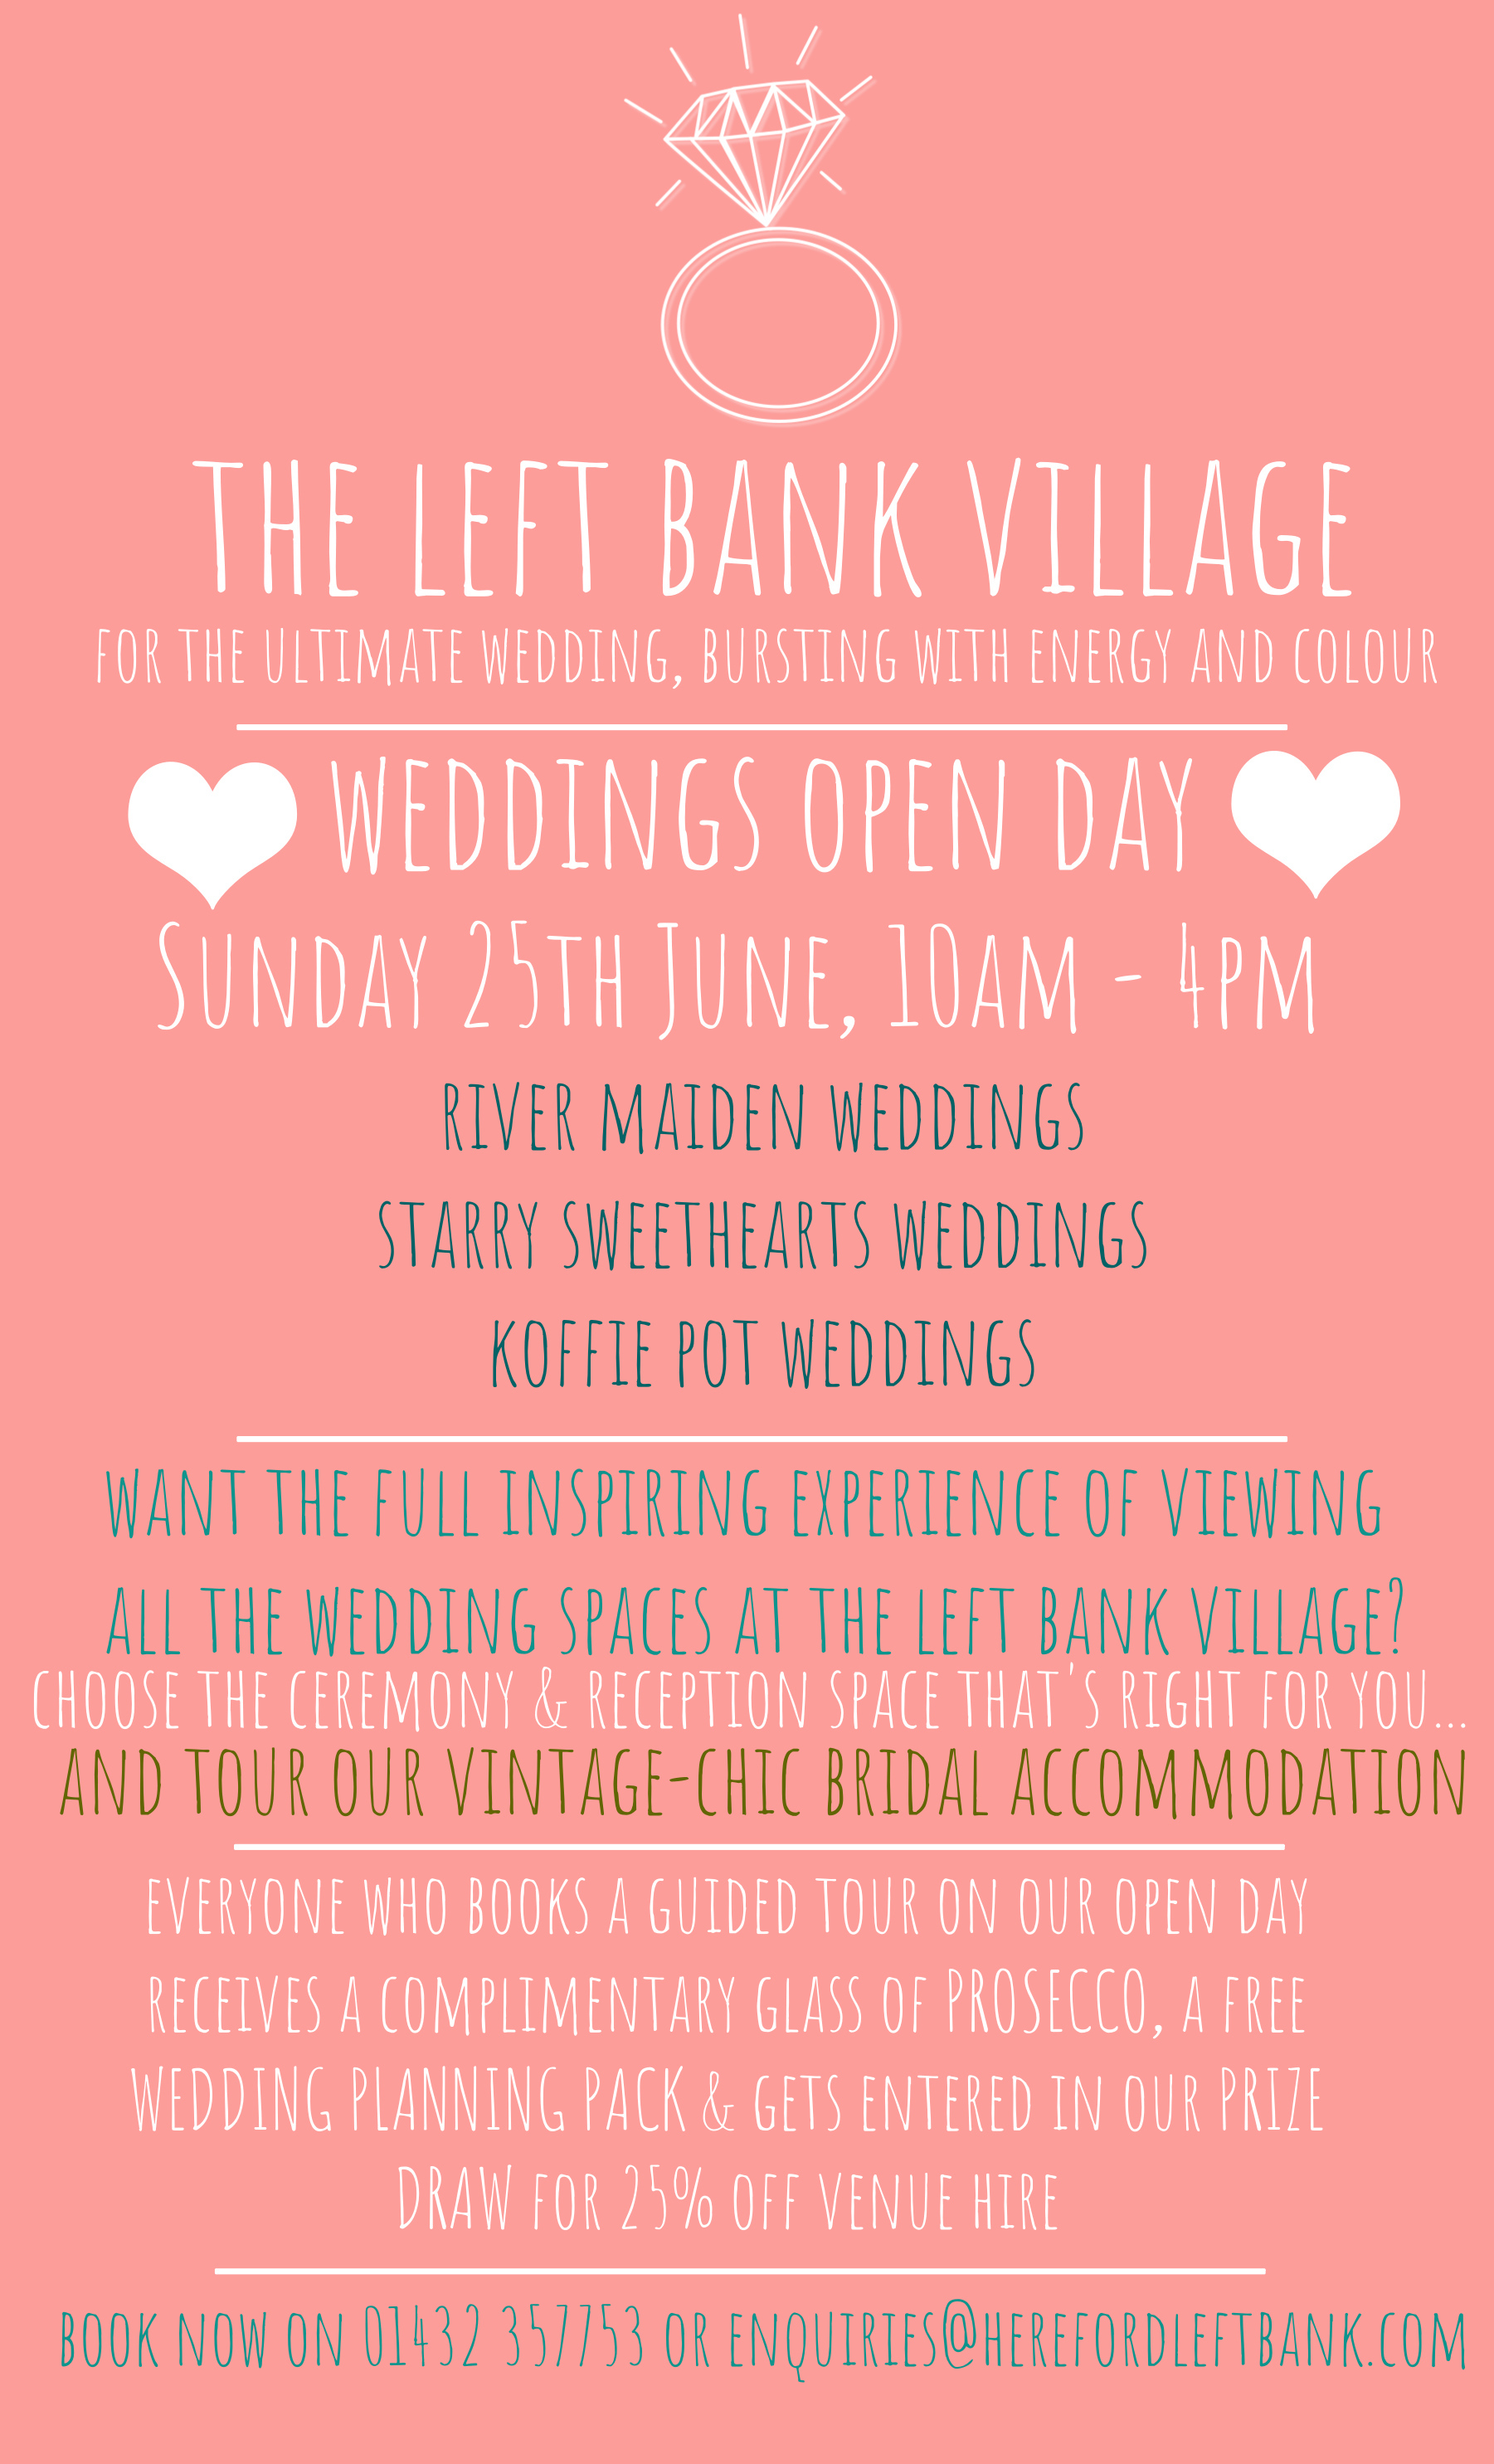 Weddings Open Day @ The Left Bank Village